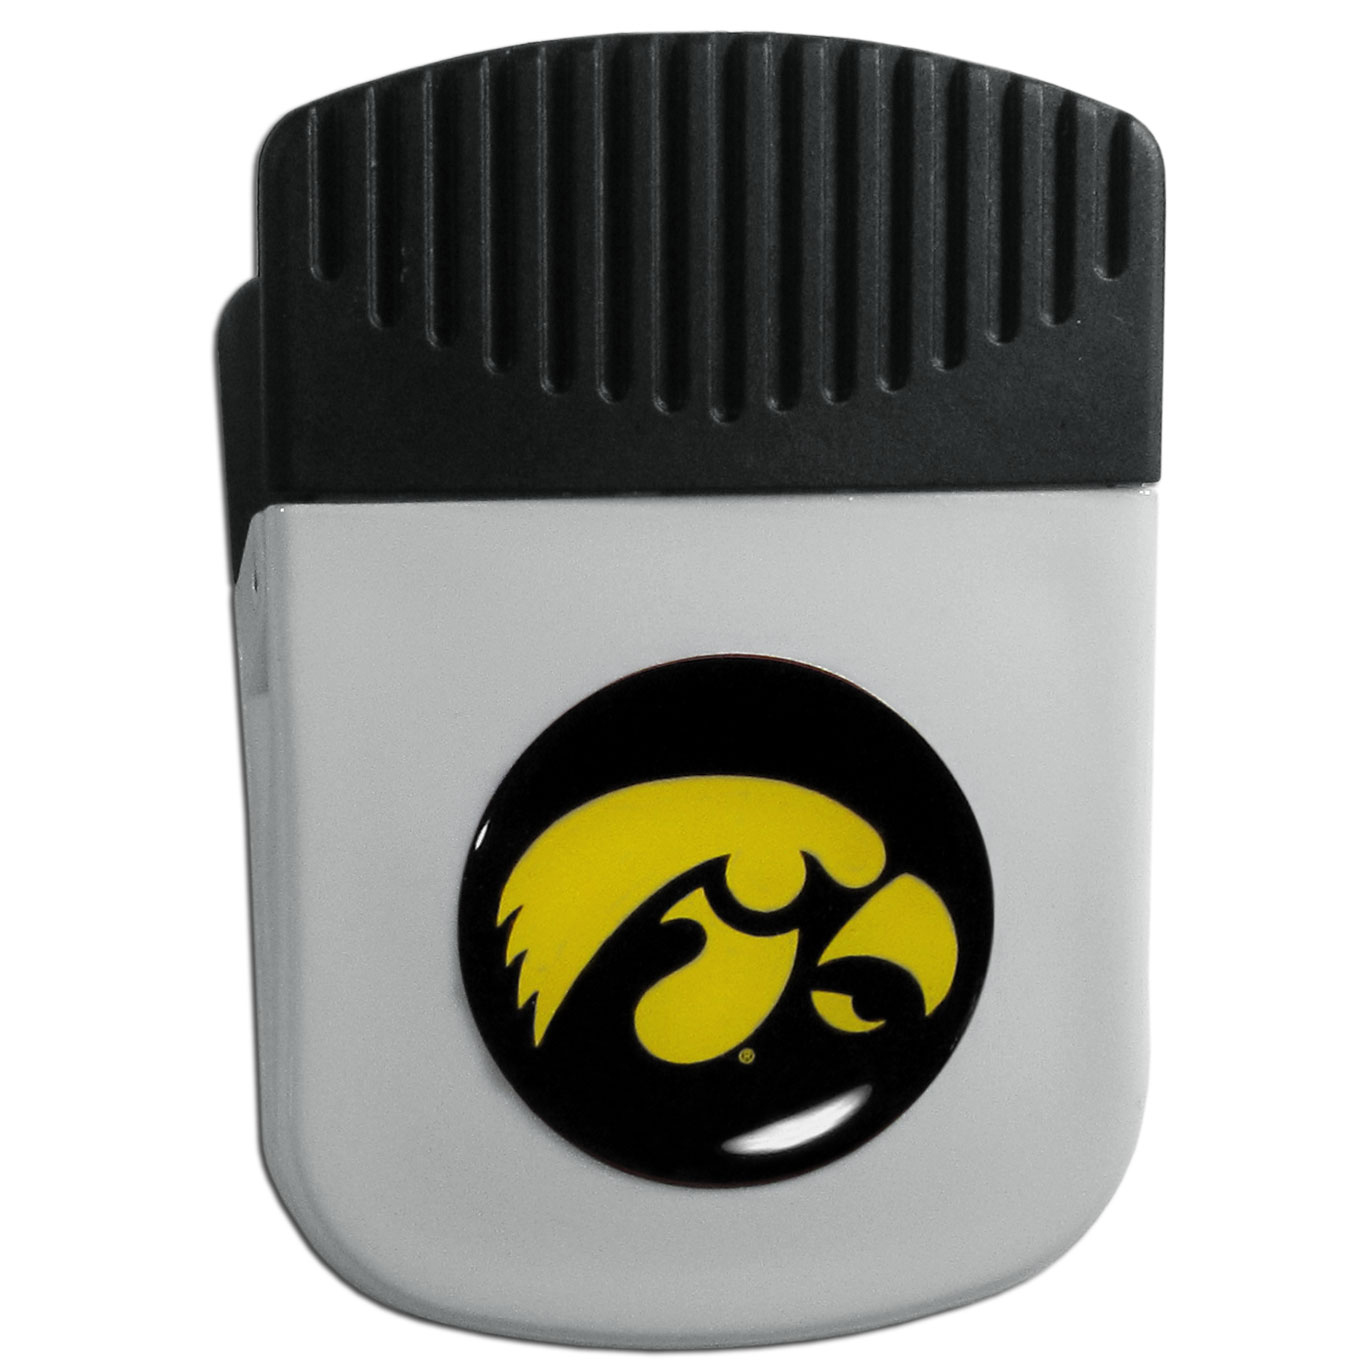 Iowa Hawkeyes Chip Clip Magnet - Use this attractive clip magnet to hold memos, photos or appointment cards on the fridge or take it down keep use it to clip bags shut. The magnet features a domed Iowa Hawkeyes logo.